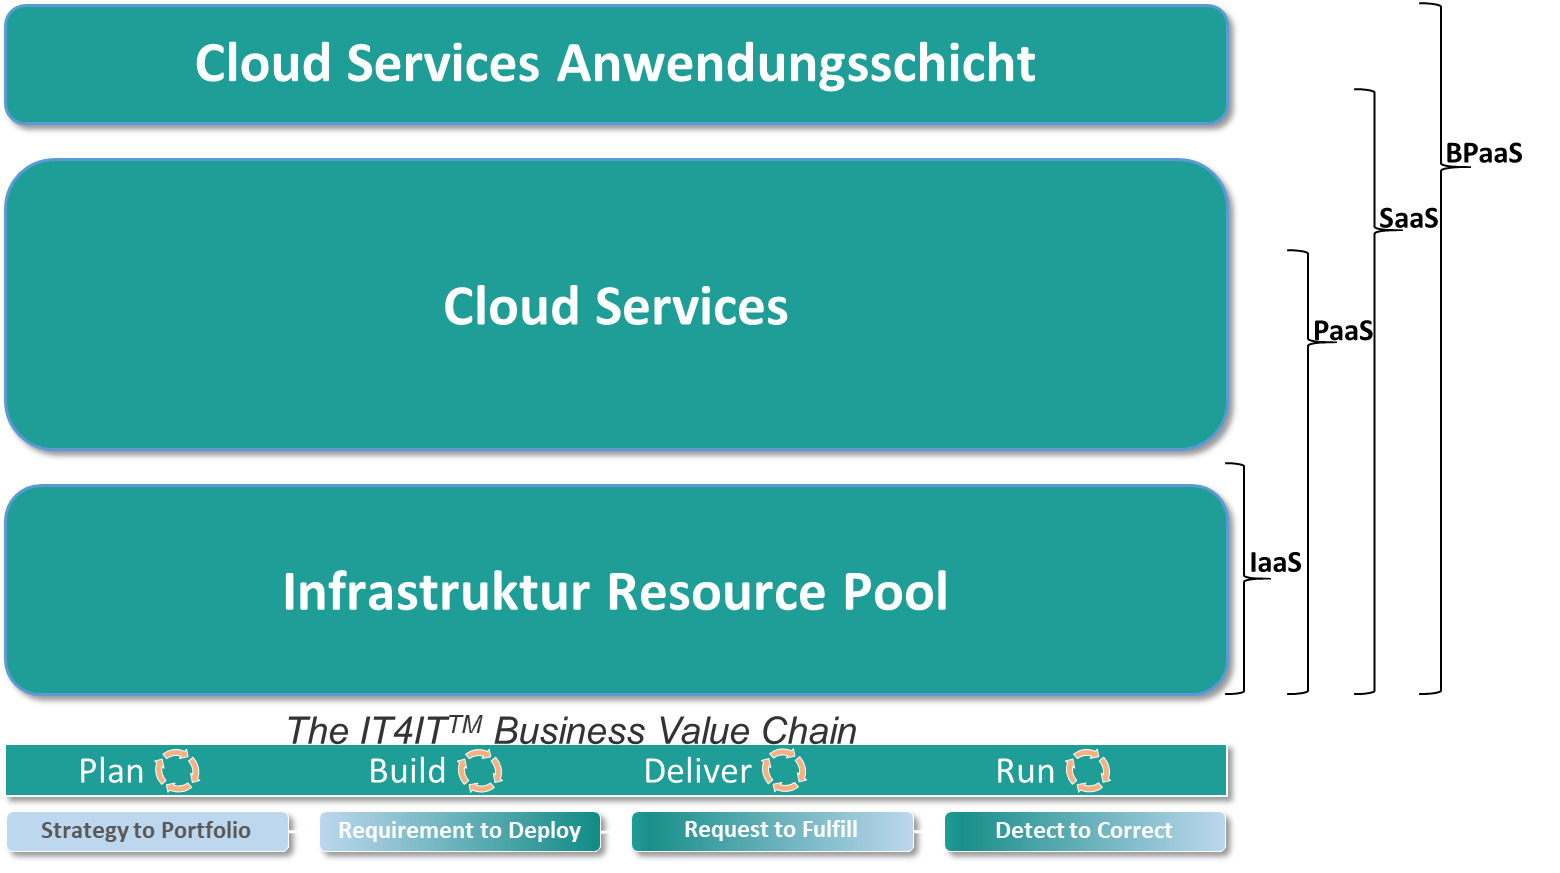 Anwendungsebenen von Cloud-Services und IT4IT-Standard (Bild: Center Integrated Business Applications)